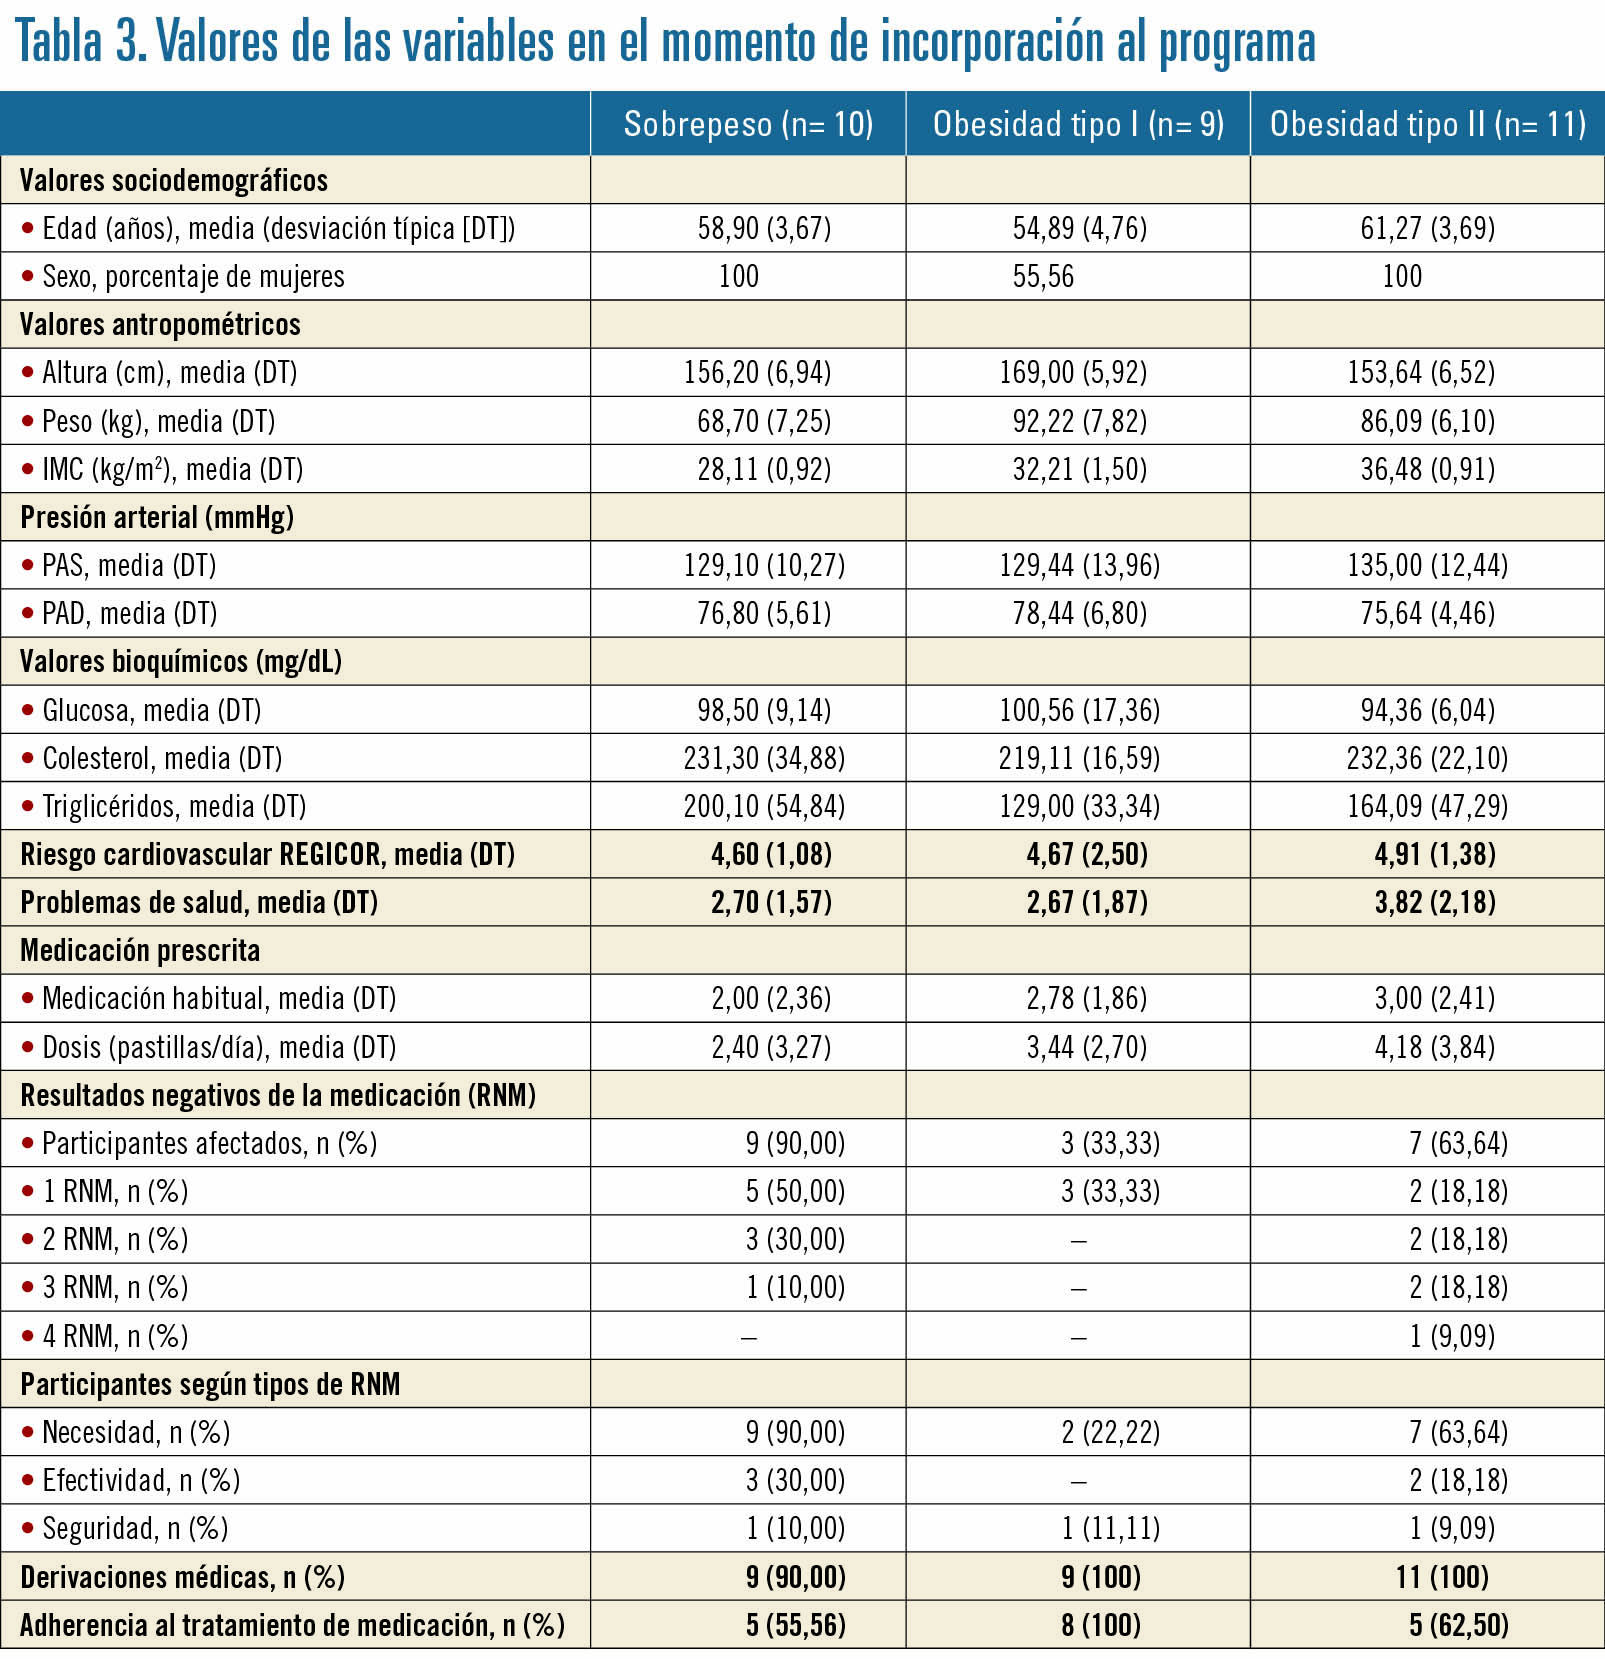 27 EF582 OFICINA FARMACIA ANALISIS tabla 3